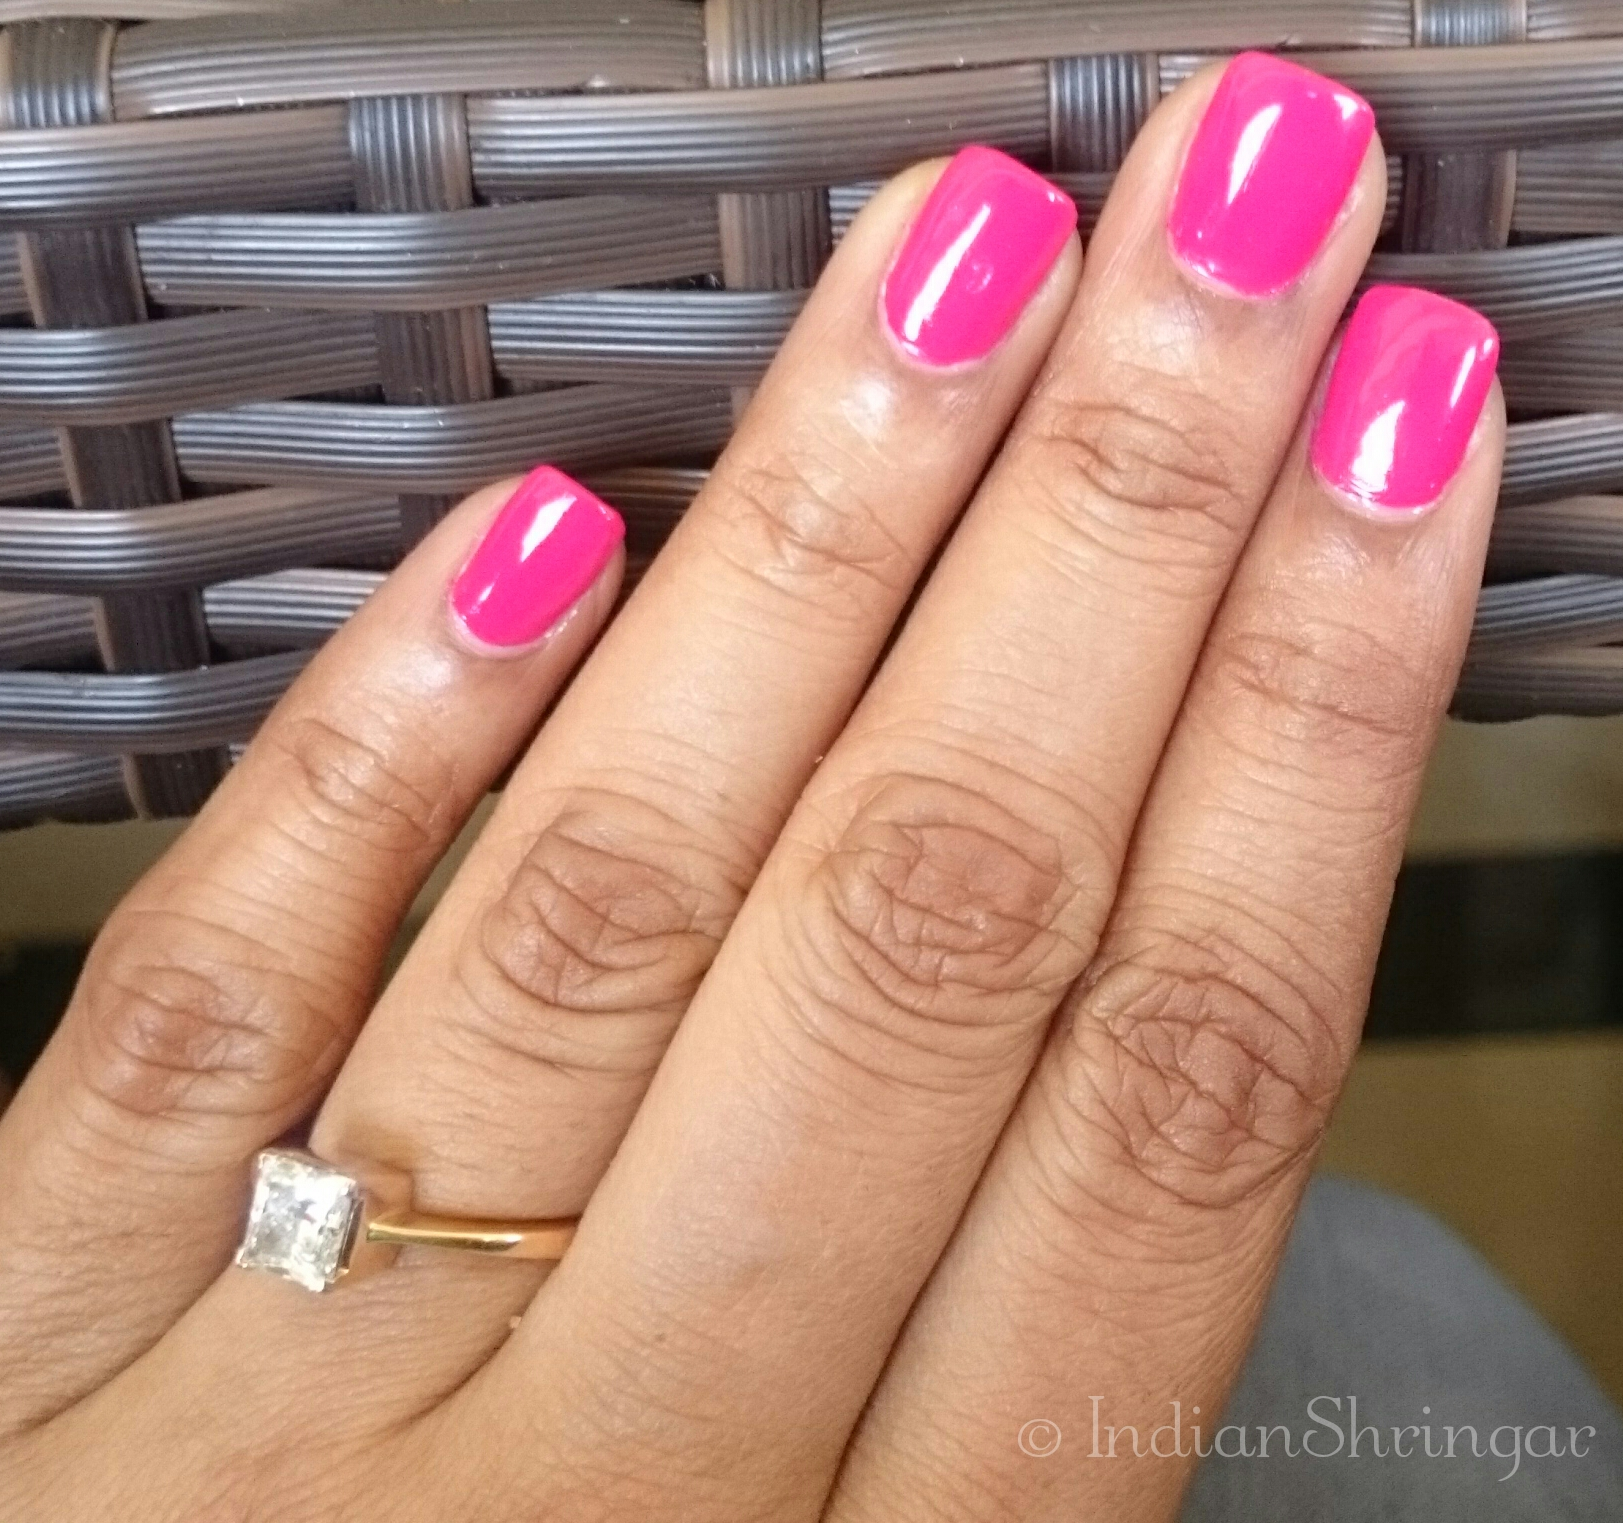 Nail Extensions Gel: The Procedure And The Misconceptions